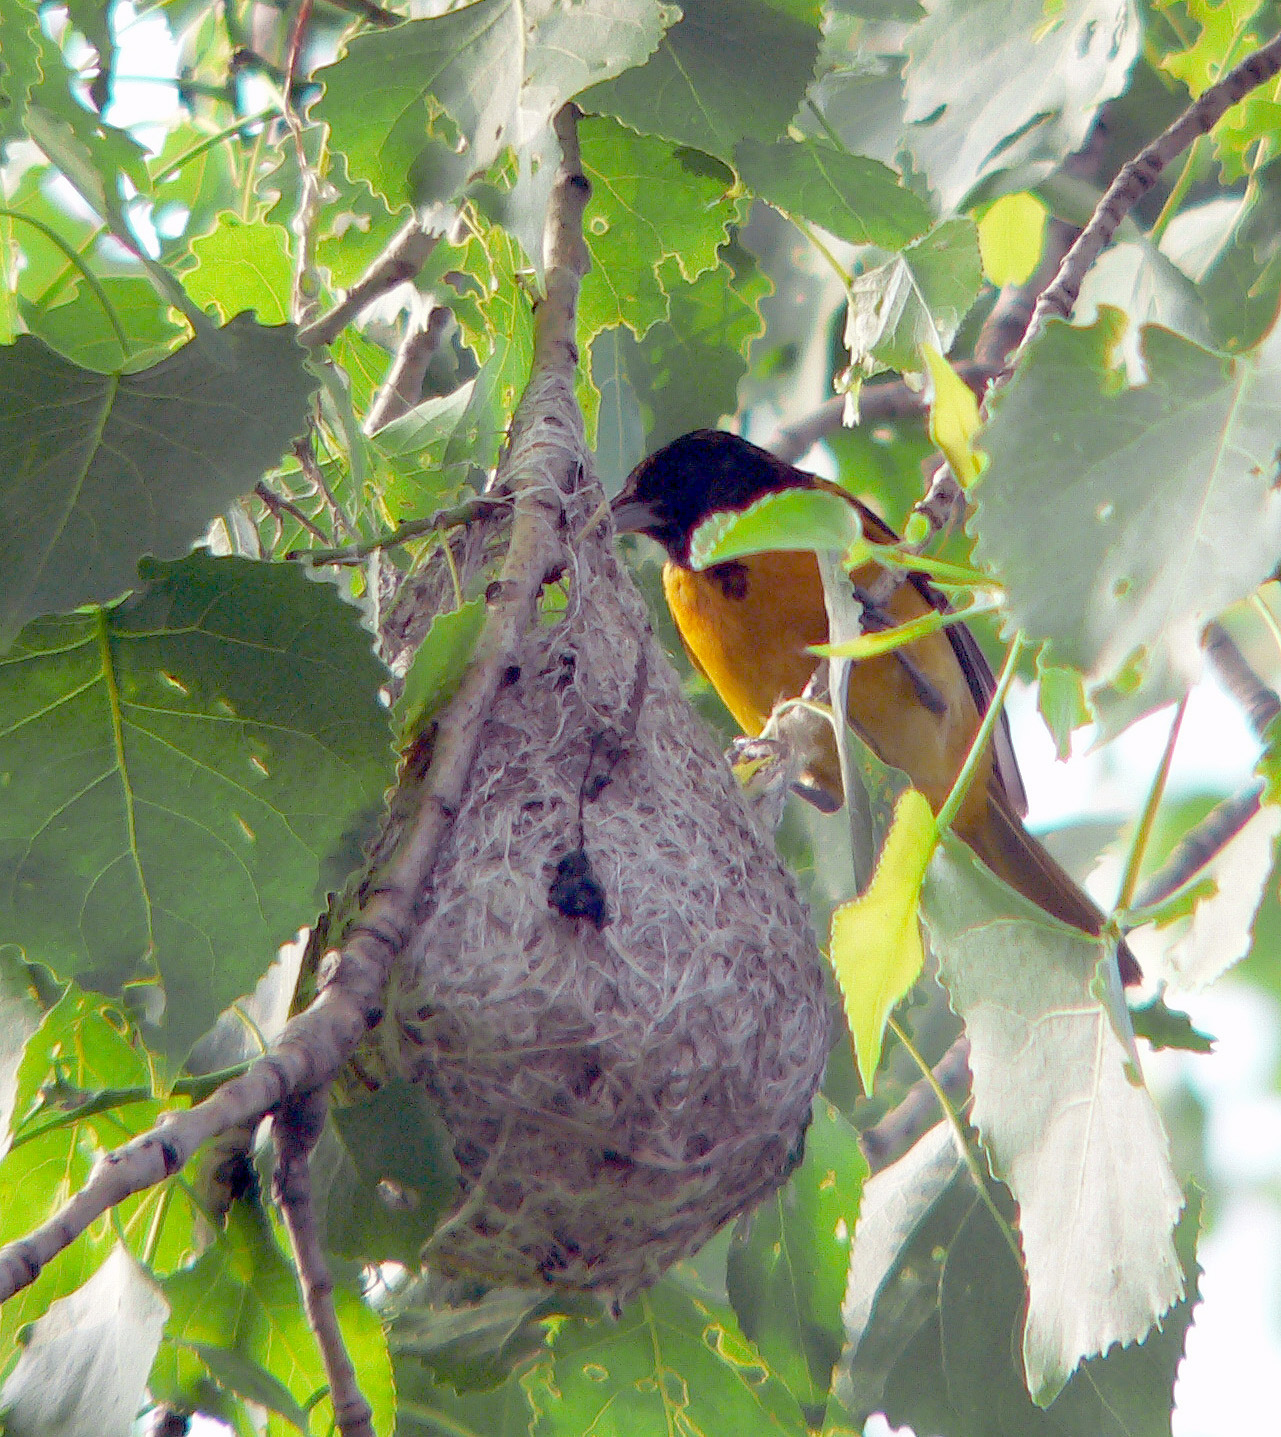 Male Baltimore Oriole at nest. These woven nests are so sturdy they often last through the  entire year.